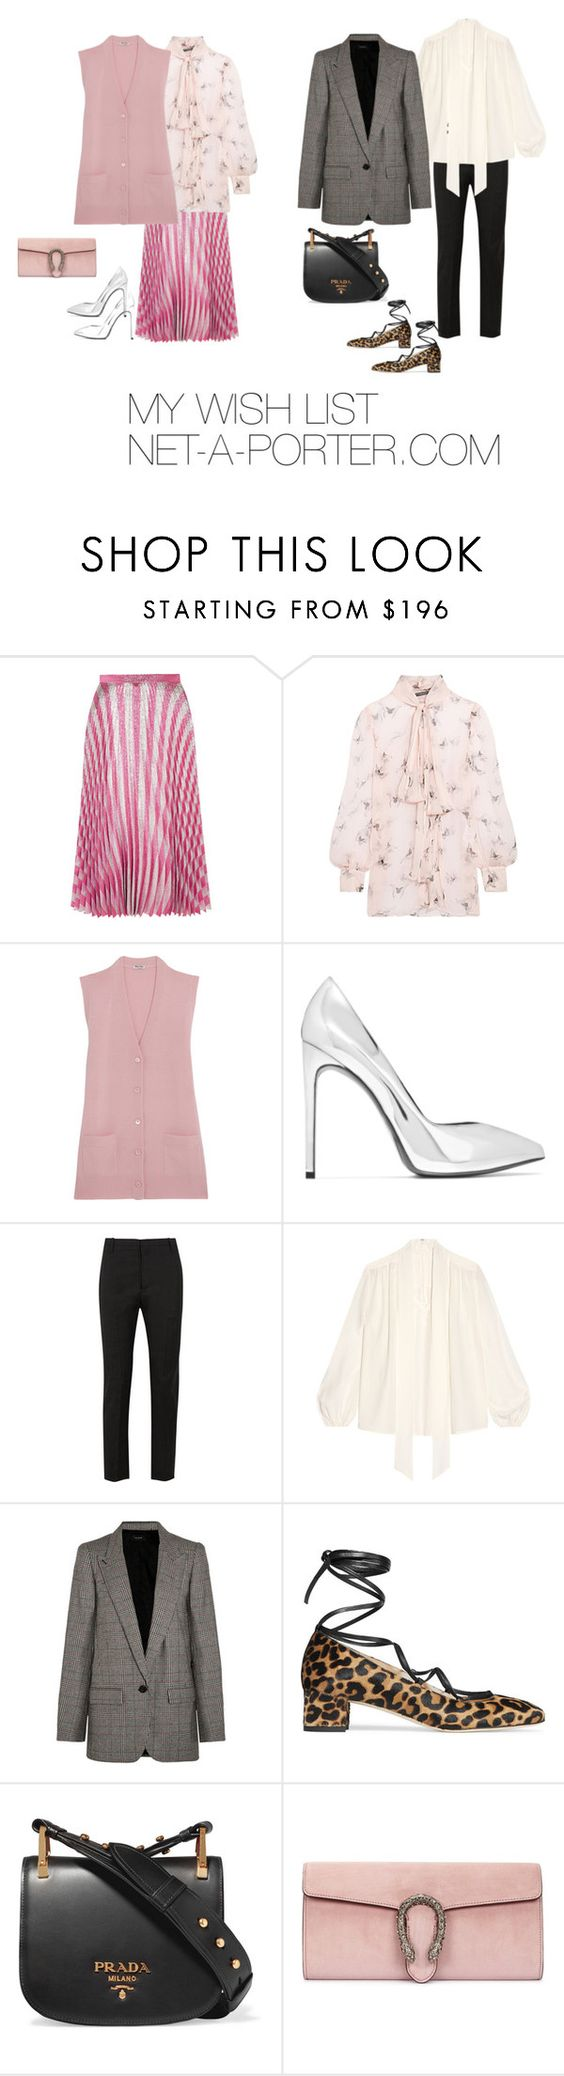 """MY WISH LIST NET-A-PORTER.COM"" by maellog ❤ liked on Polyvore featuring Gucci, Alexander McQueen, Miu Miu, Étoile Isabel Marant, Isabel Marant, Prada, shopping, net, mywishlist and momwithsneakers"